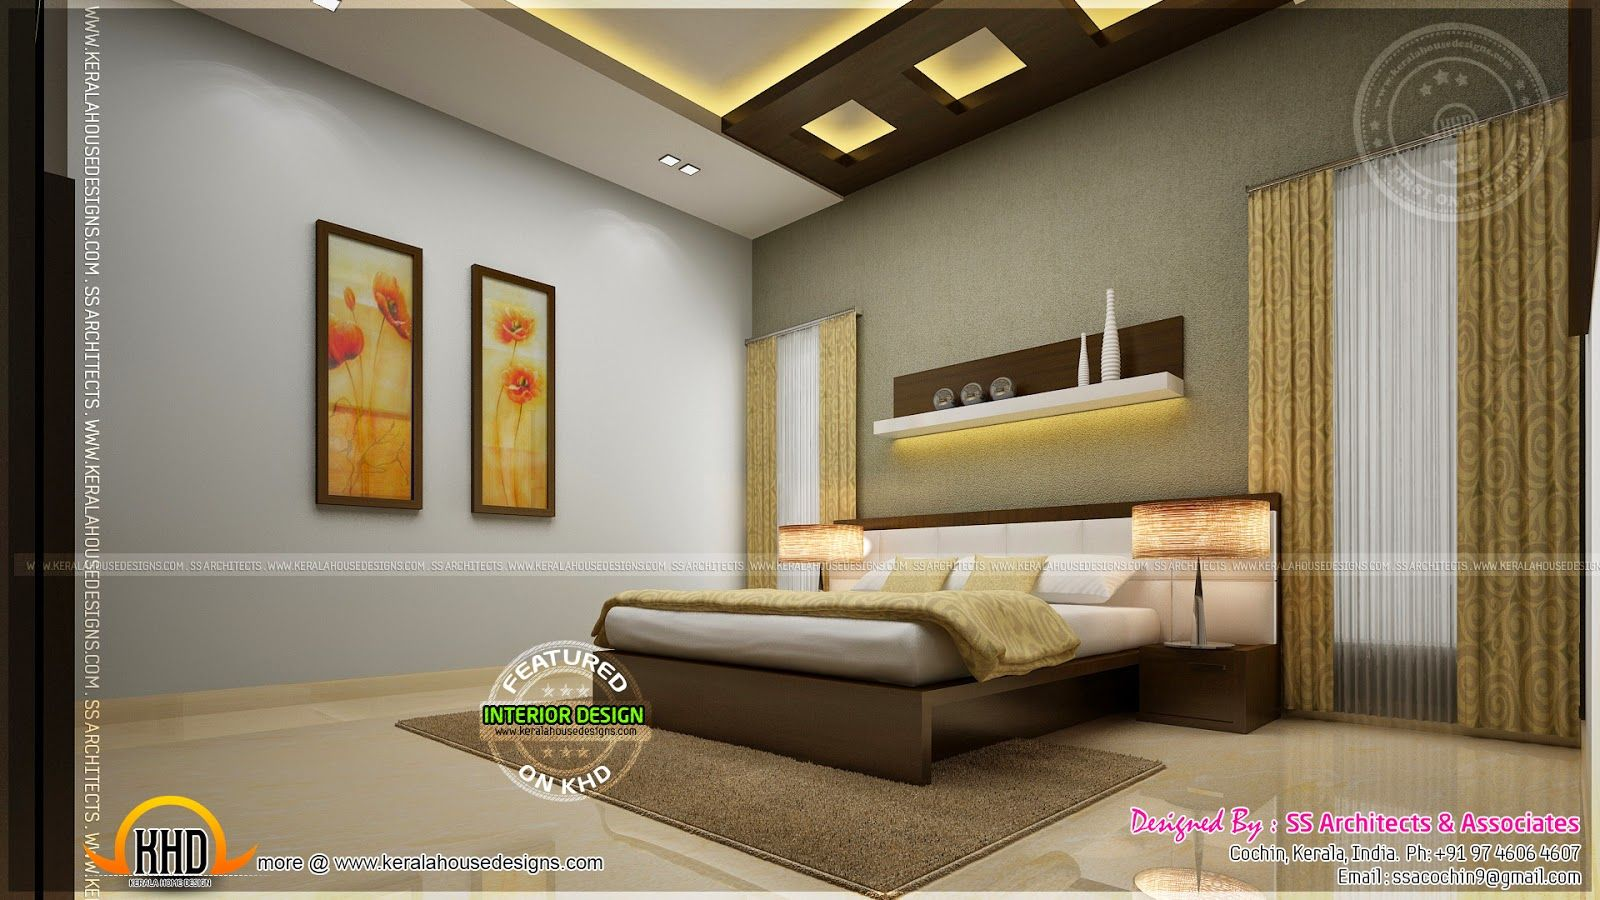 Indian master bedroom interior design google search for Design my bedroom layout